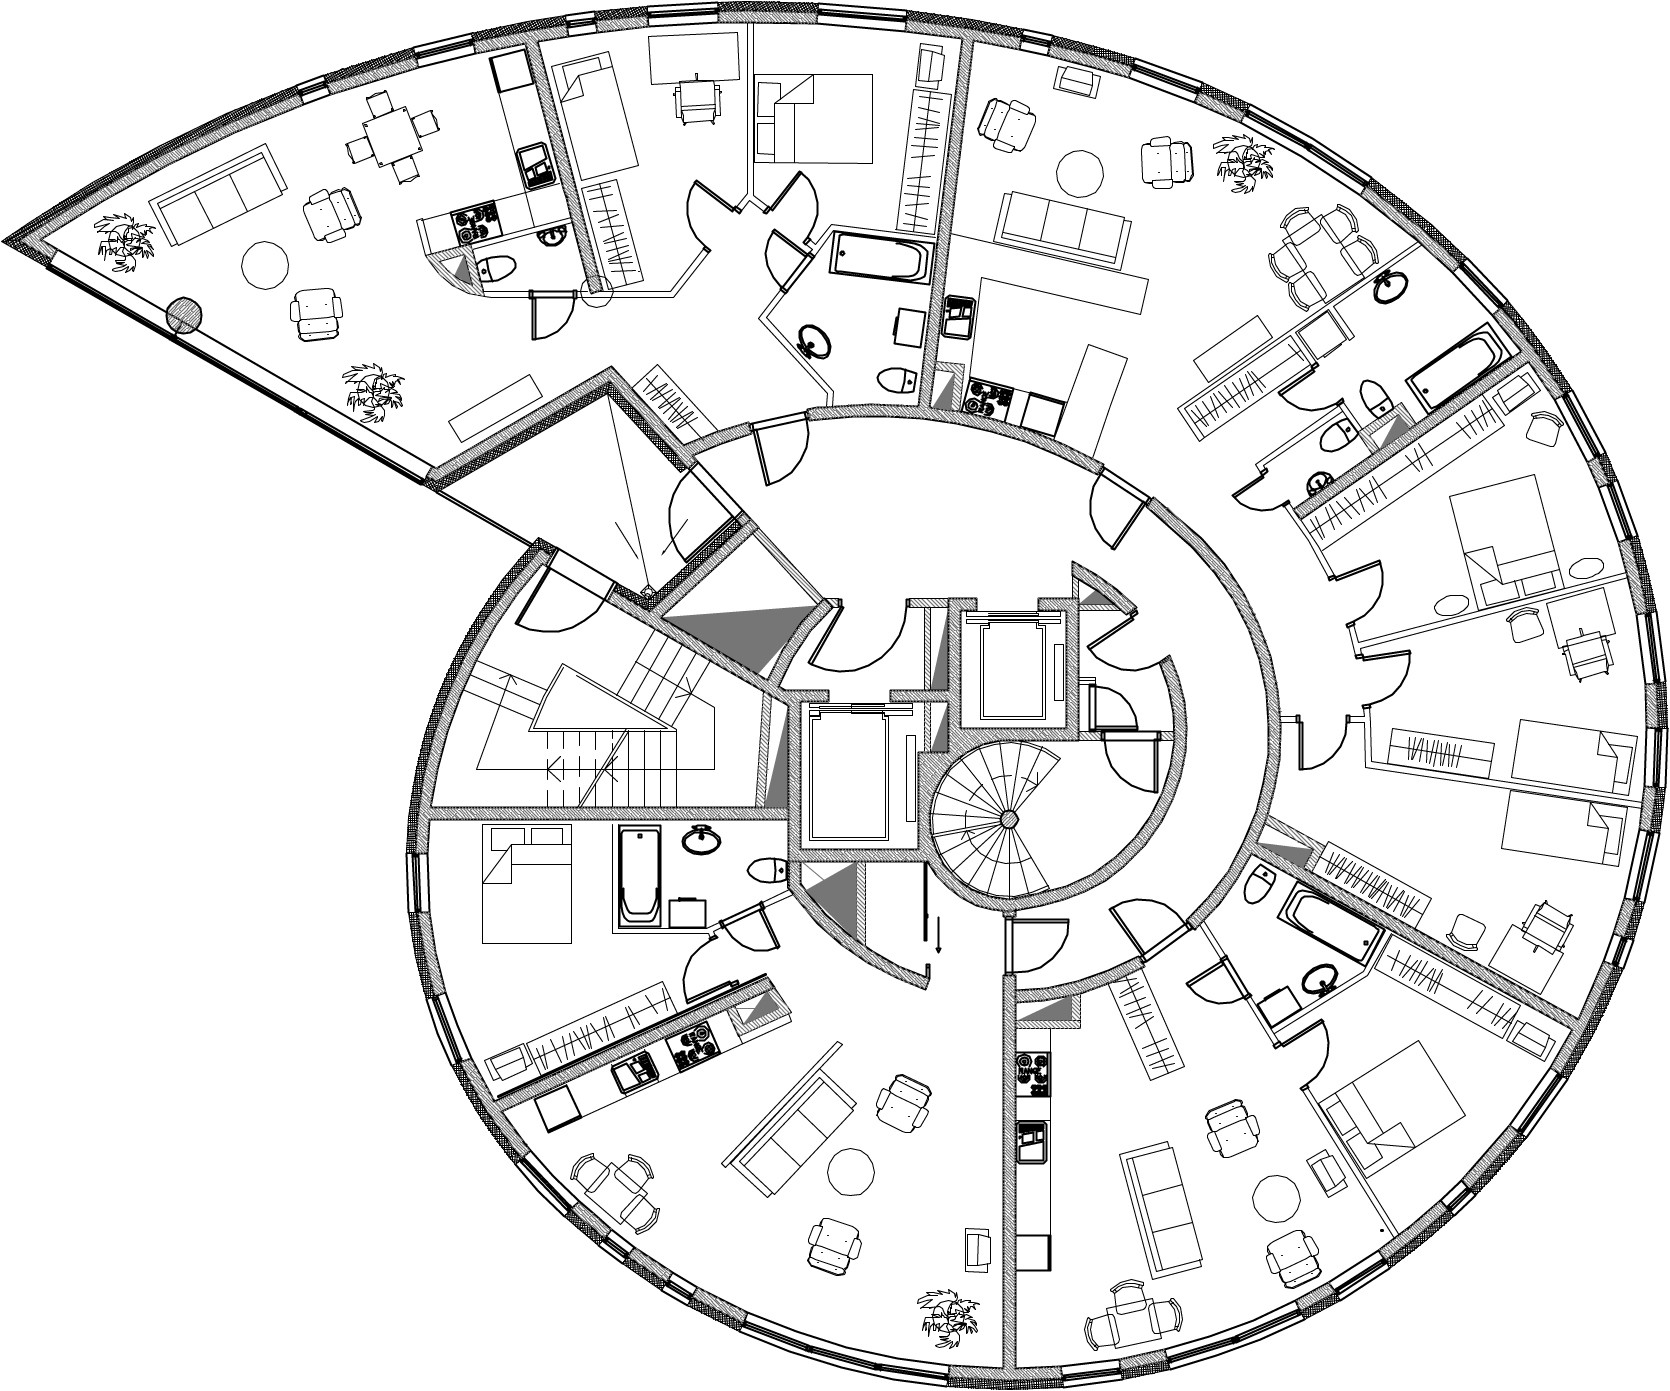 Rosagefinalproject blogspot also Duplicable City Center further Dome Home Plans in addition Circular Hospital Floorplan likewise Dome Home. on building a geodesic dome home